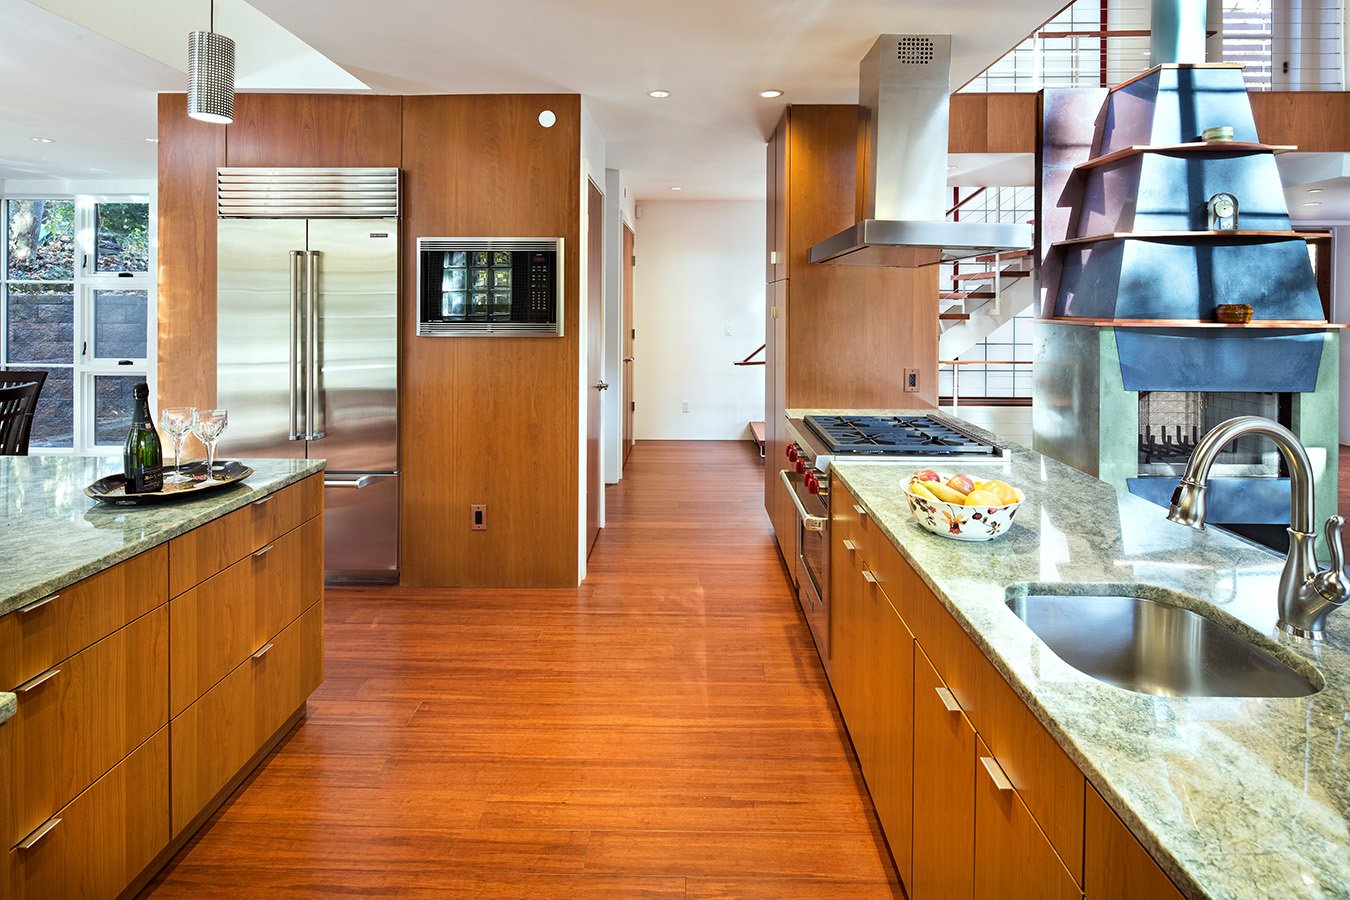 Kitchen, Refrigerator, Cooktops, Range, Range Hood, Microwave, Dishwasher, Granite, Wood, Medium Hardwood, Mosaic Tile, Ceiling, Pendant, Undermount, and Concrete Kitchen  Best Kitchen Mosaic Tile Microwave Photos